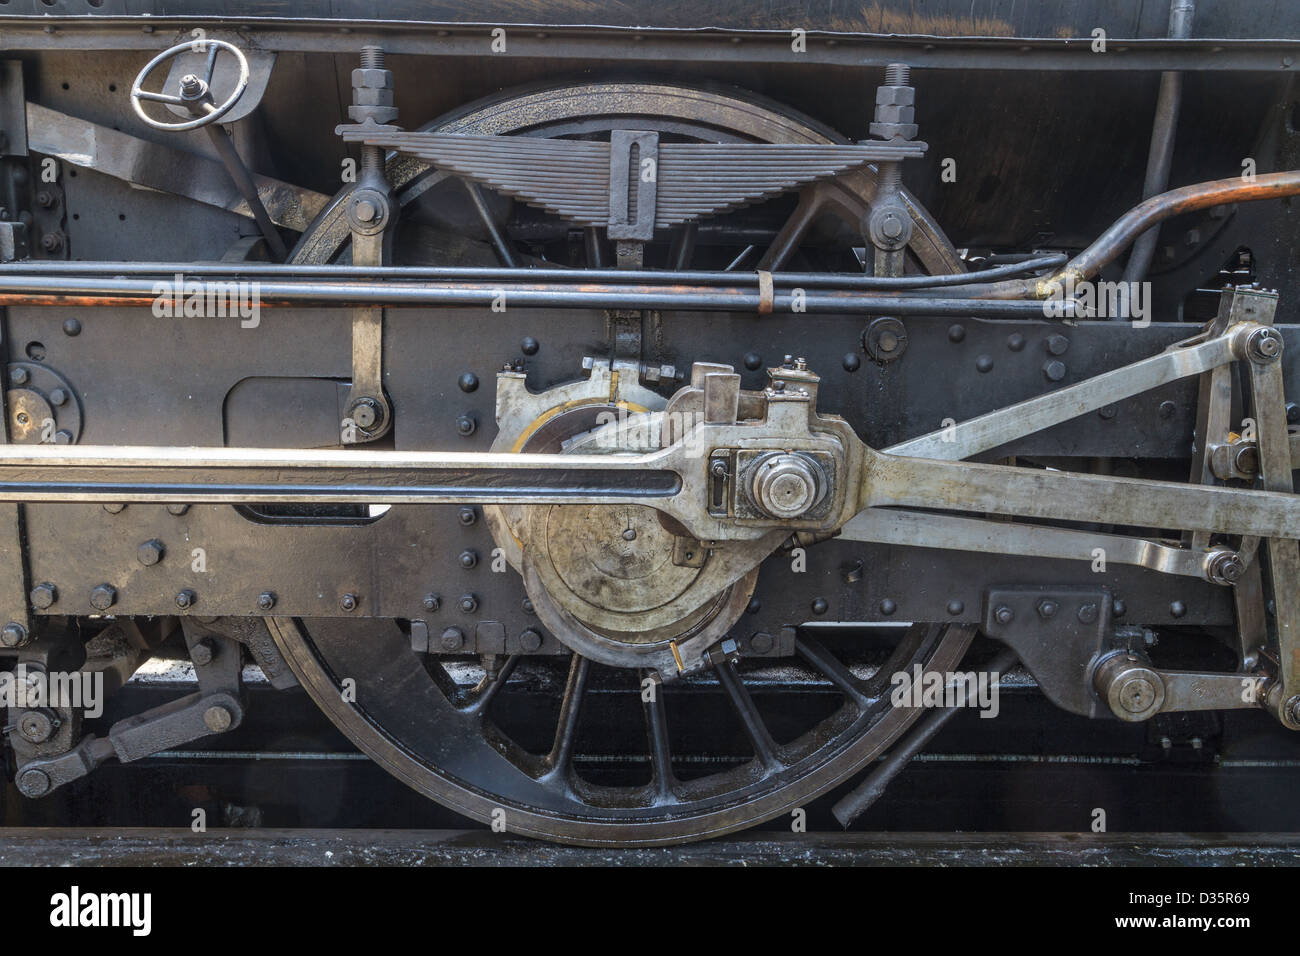 Details of old steam locomotive / engine in railway museum - Stock Image